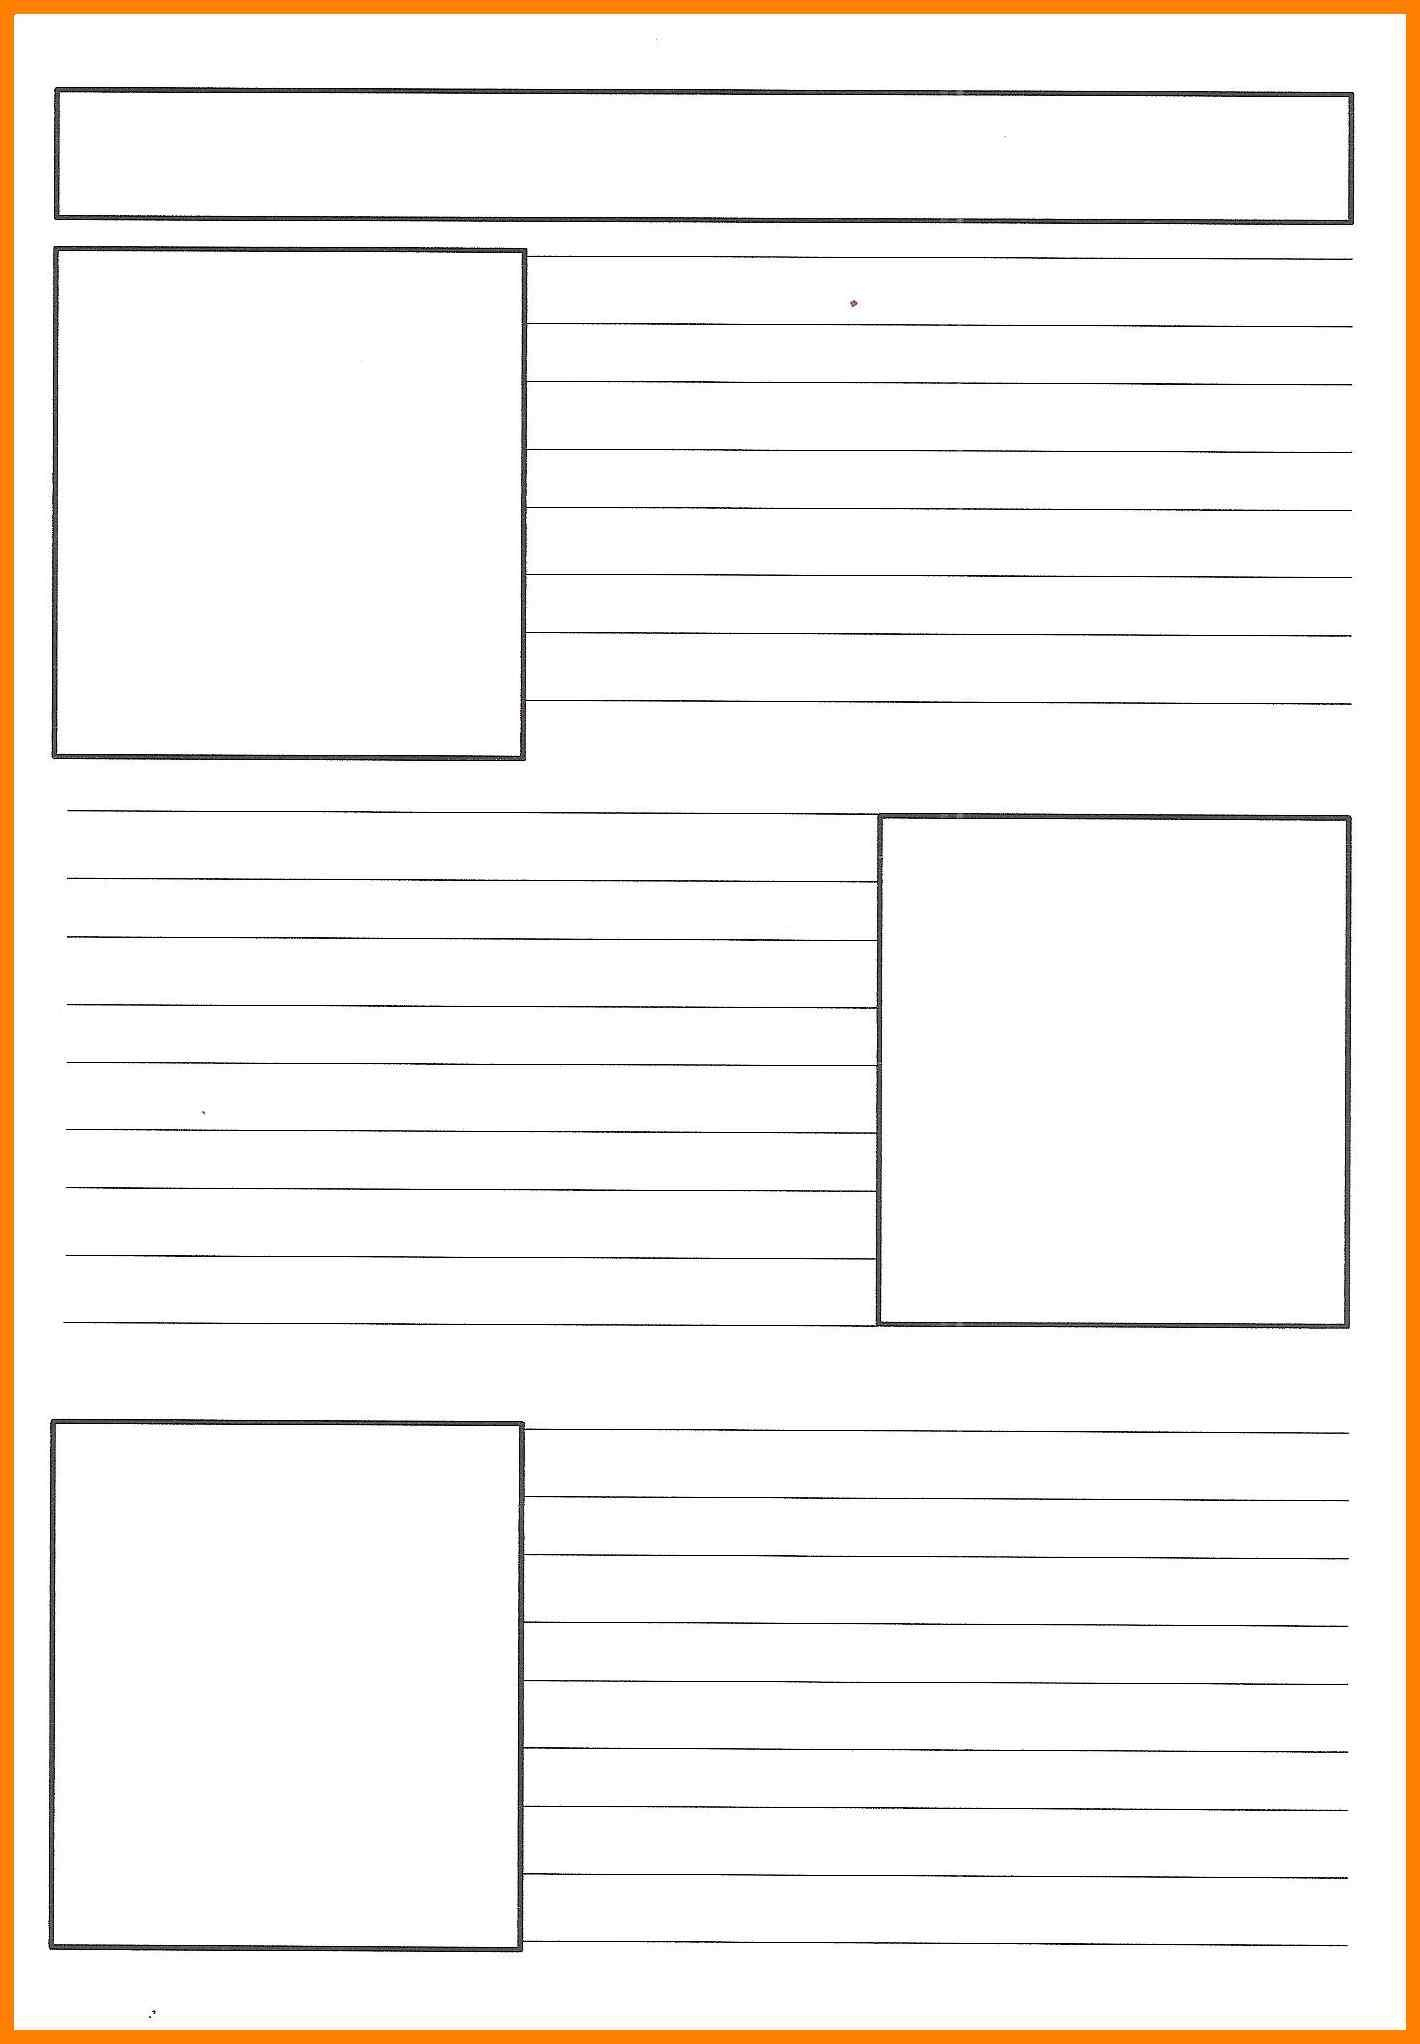 Free Printable Newspaper Template | Reference | Pinterest - Free Printable Newspaper Templates For Students